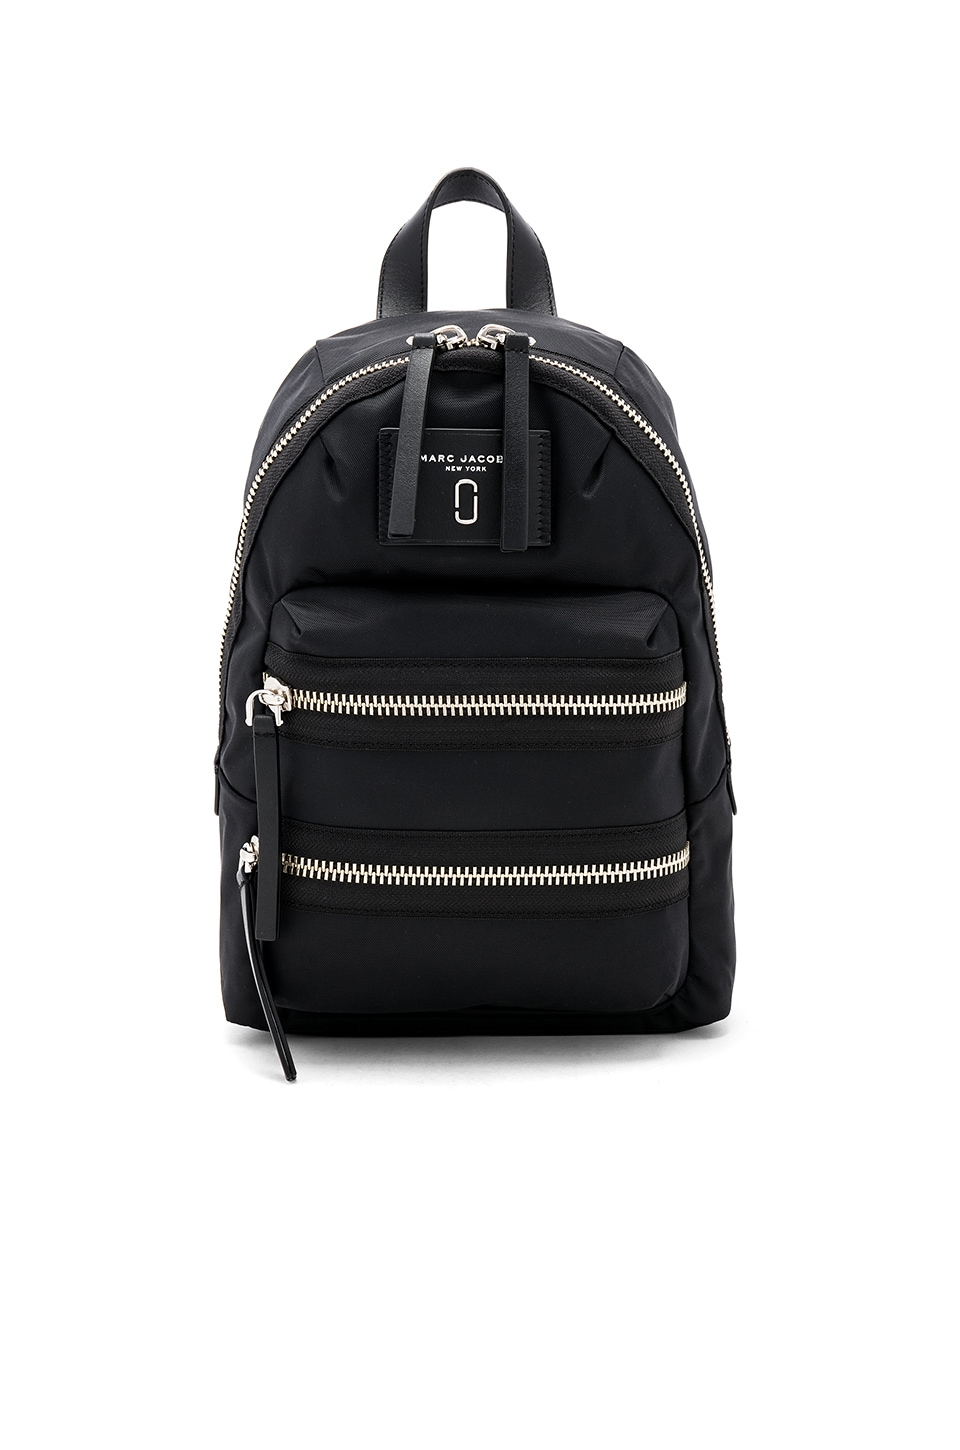 Marc Jacobs Nylon Biker Mini Backpack in Black